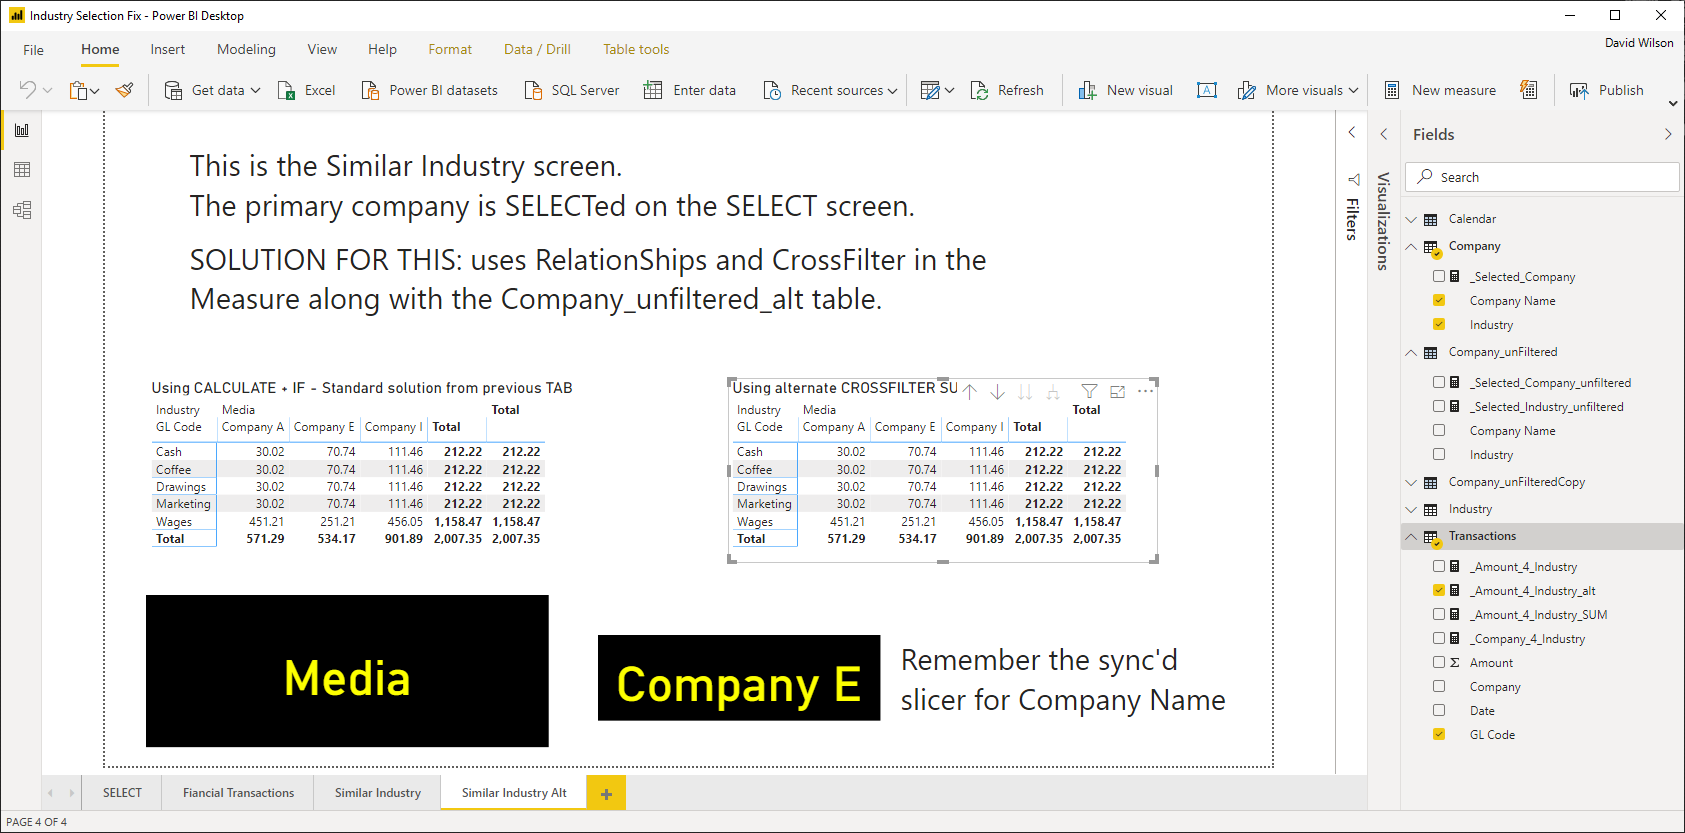 2020-02-10 07_31_02-Industry Selection Fix - Power BI Desktop